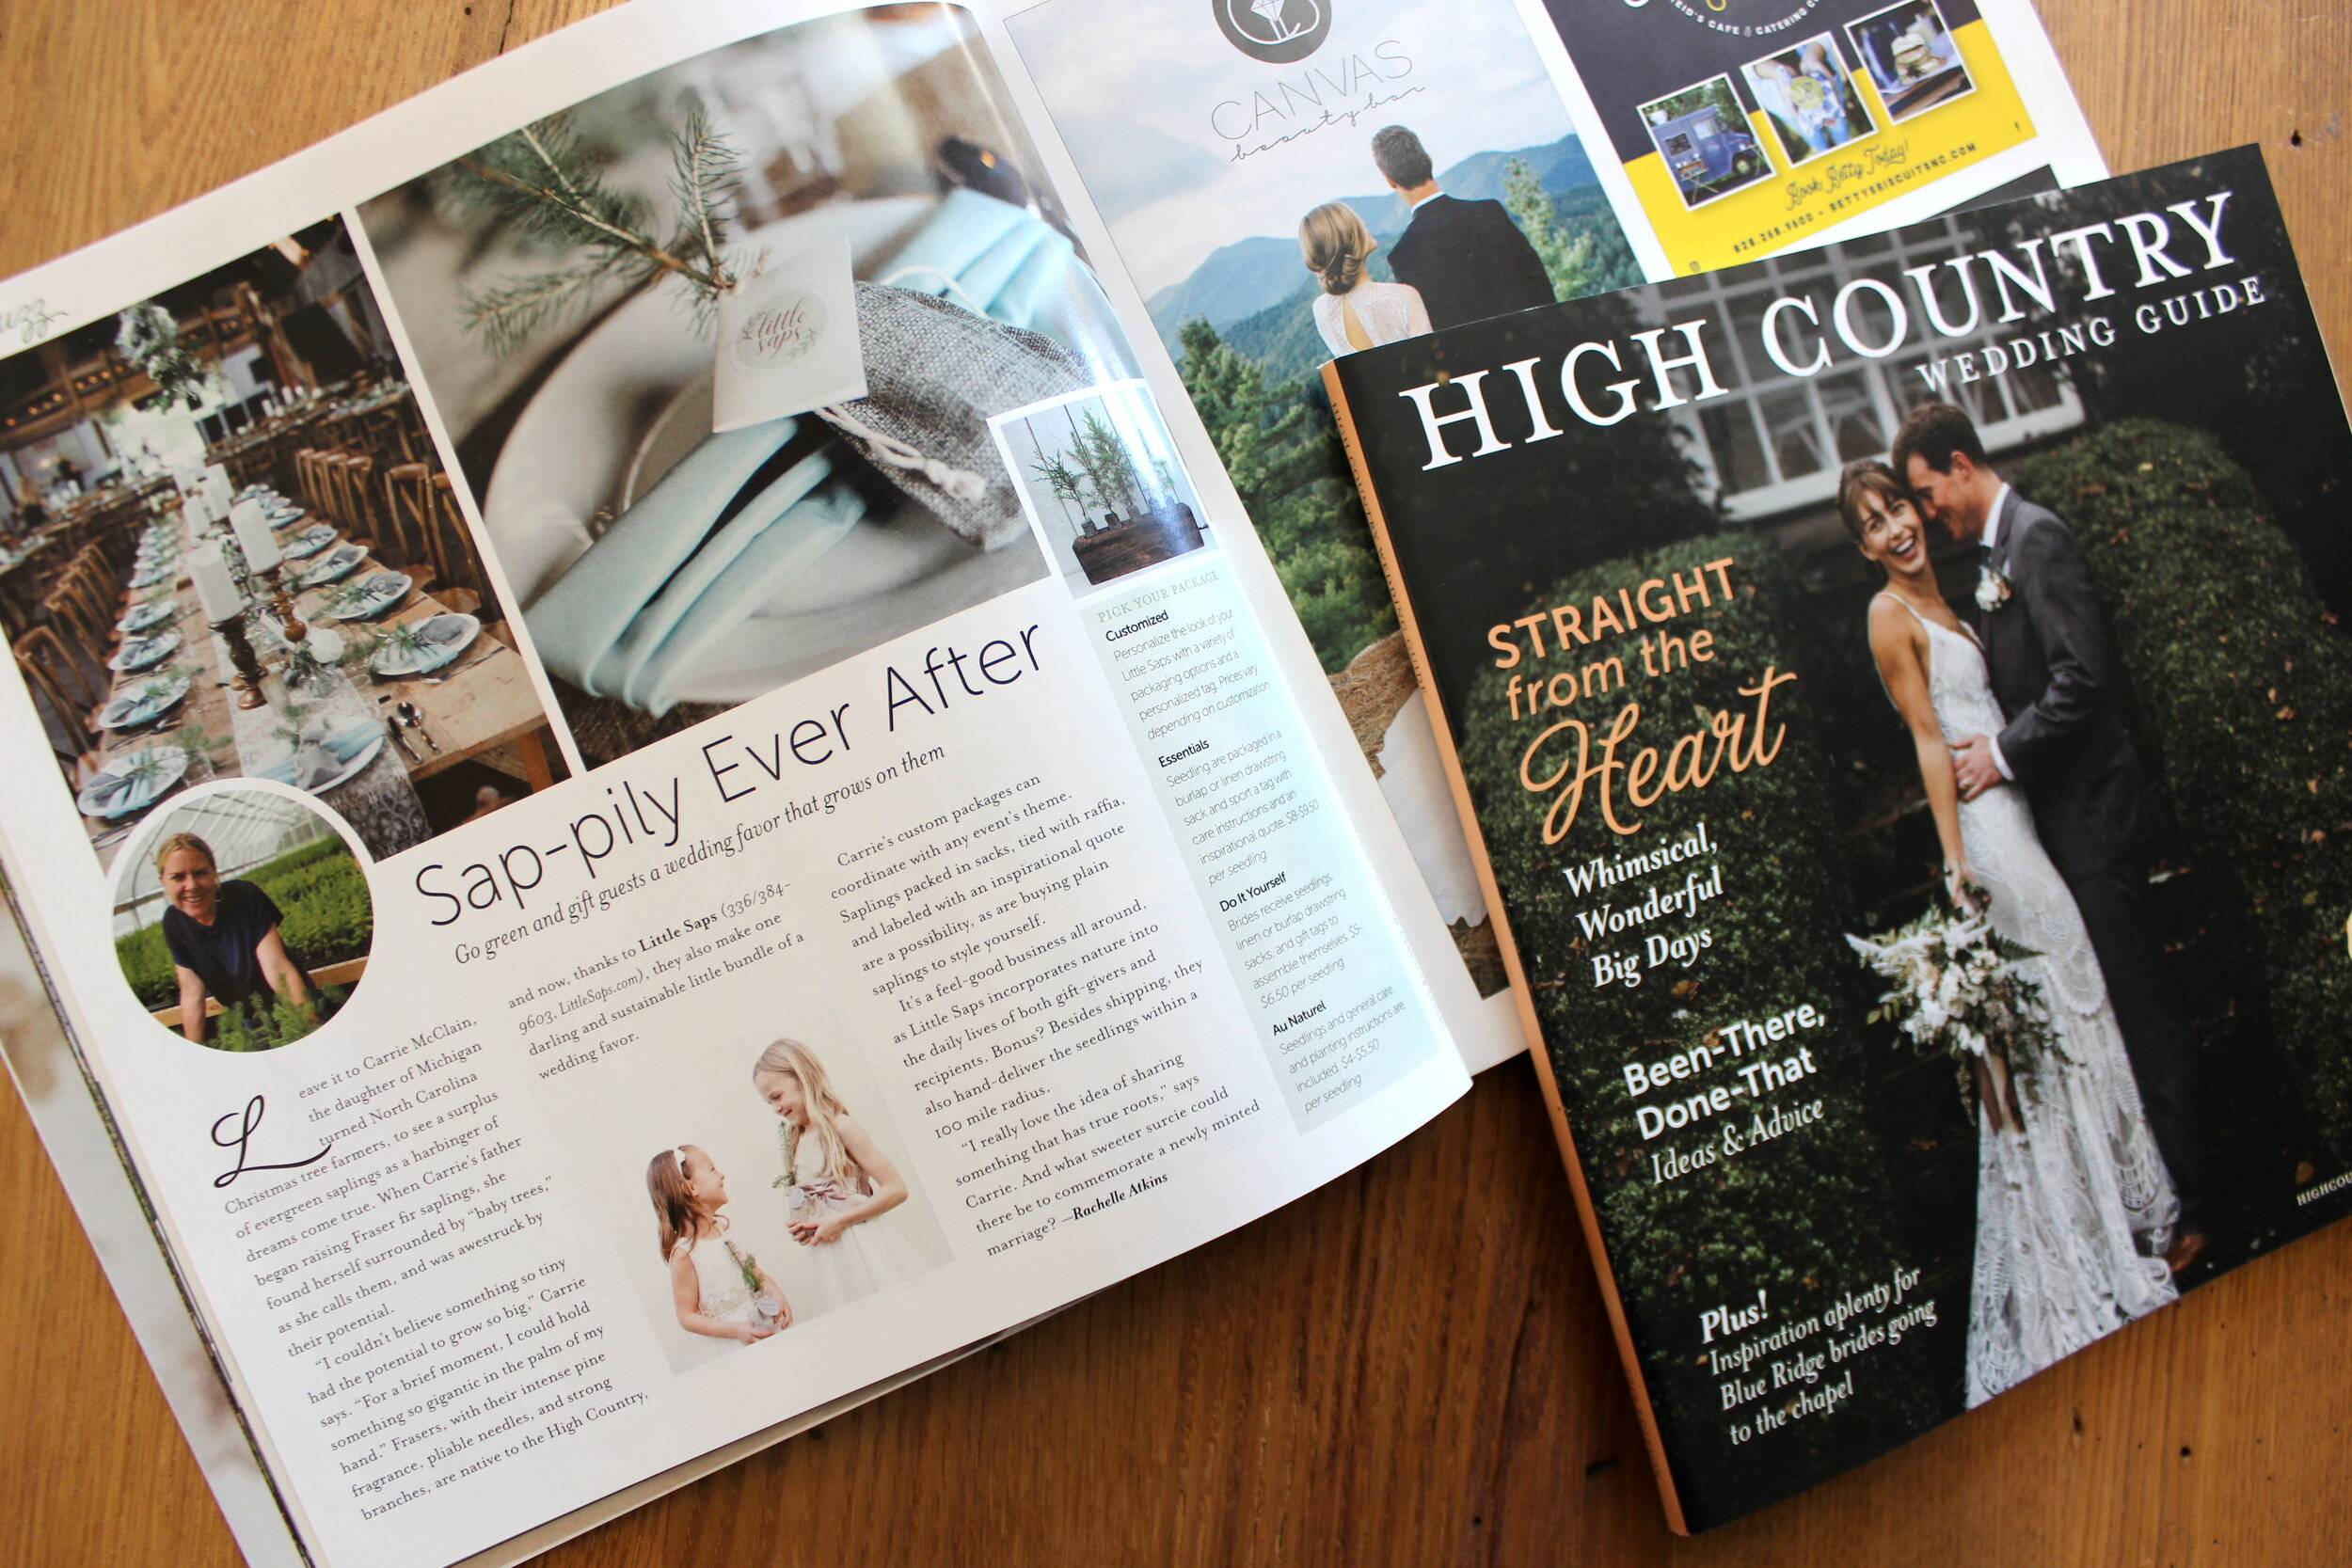 Little Saps in High Country Wedding Guide